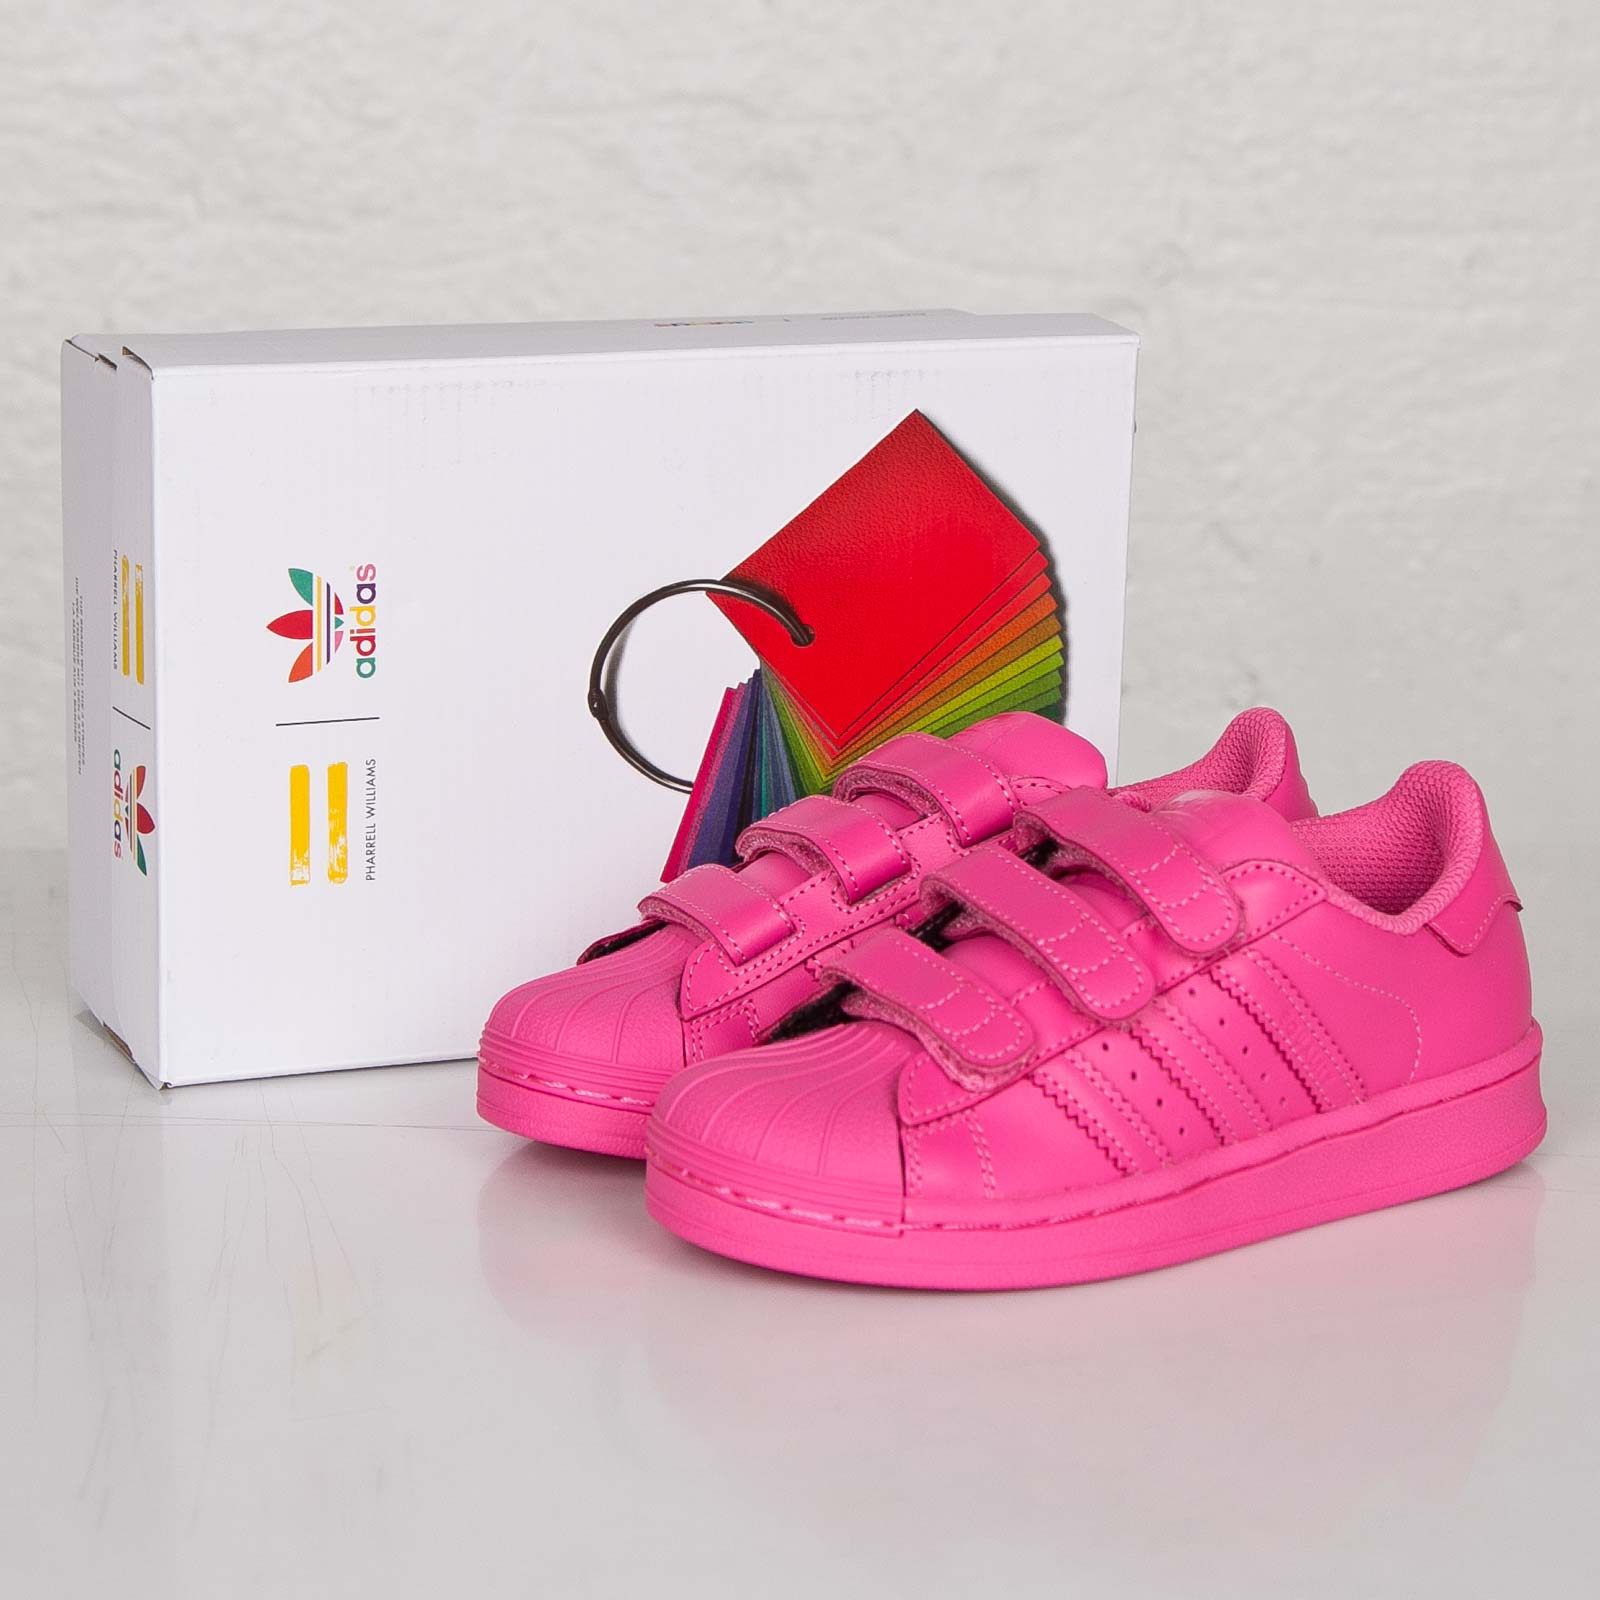 official photos f0d8d aff65 Girls Adidas Superstar Pink Leather Supercolor Trainers Pharrell Willaims  Shoes